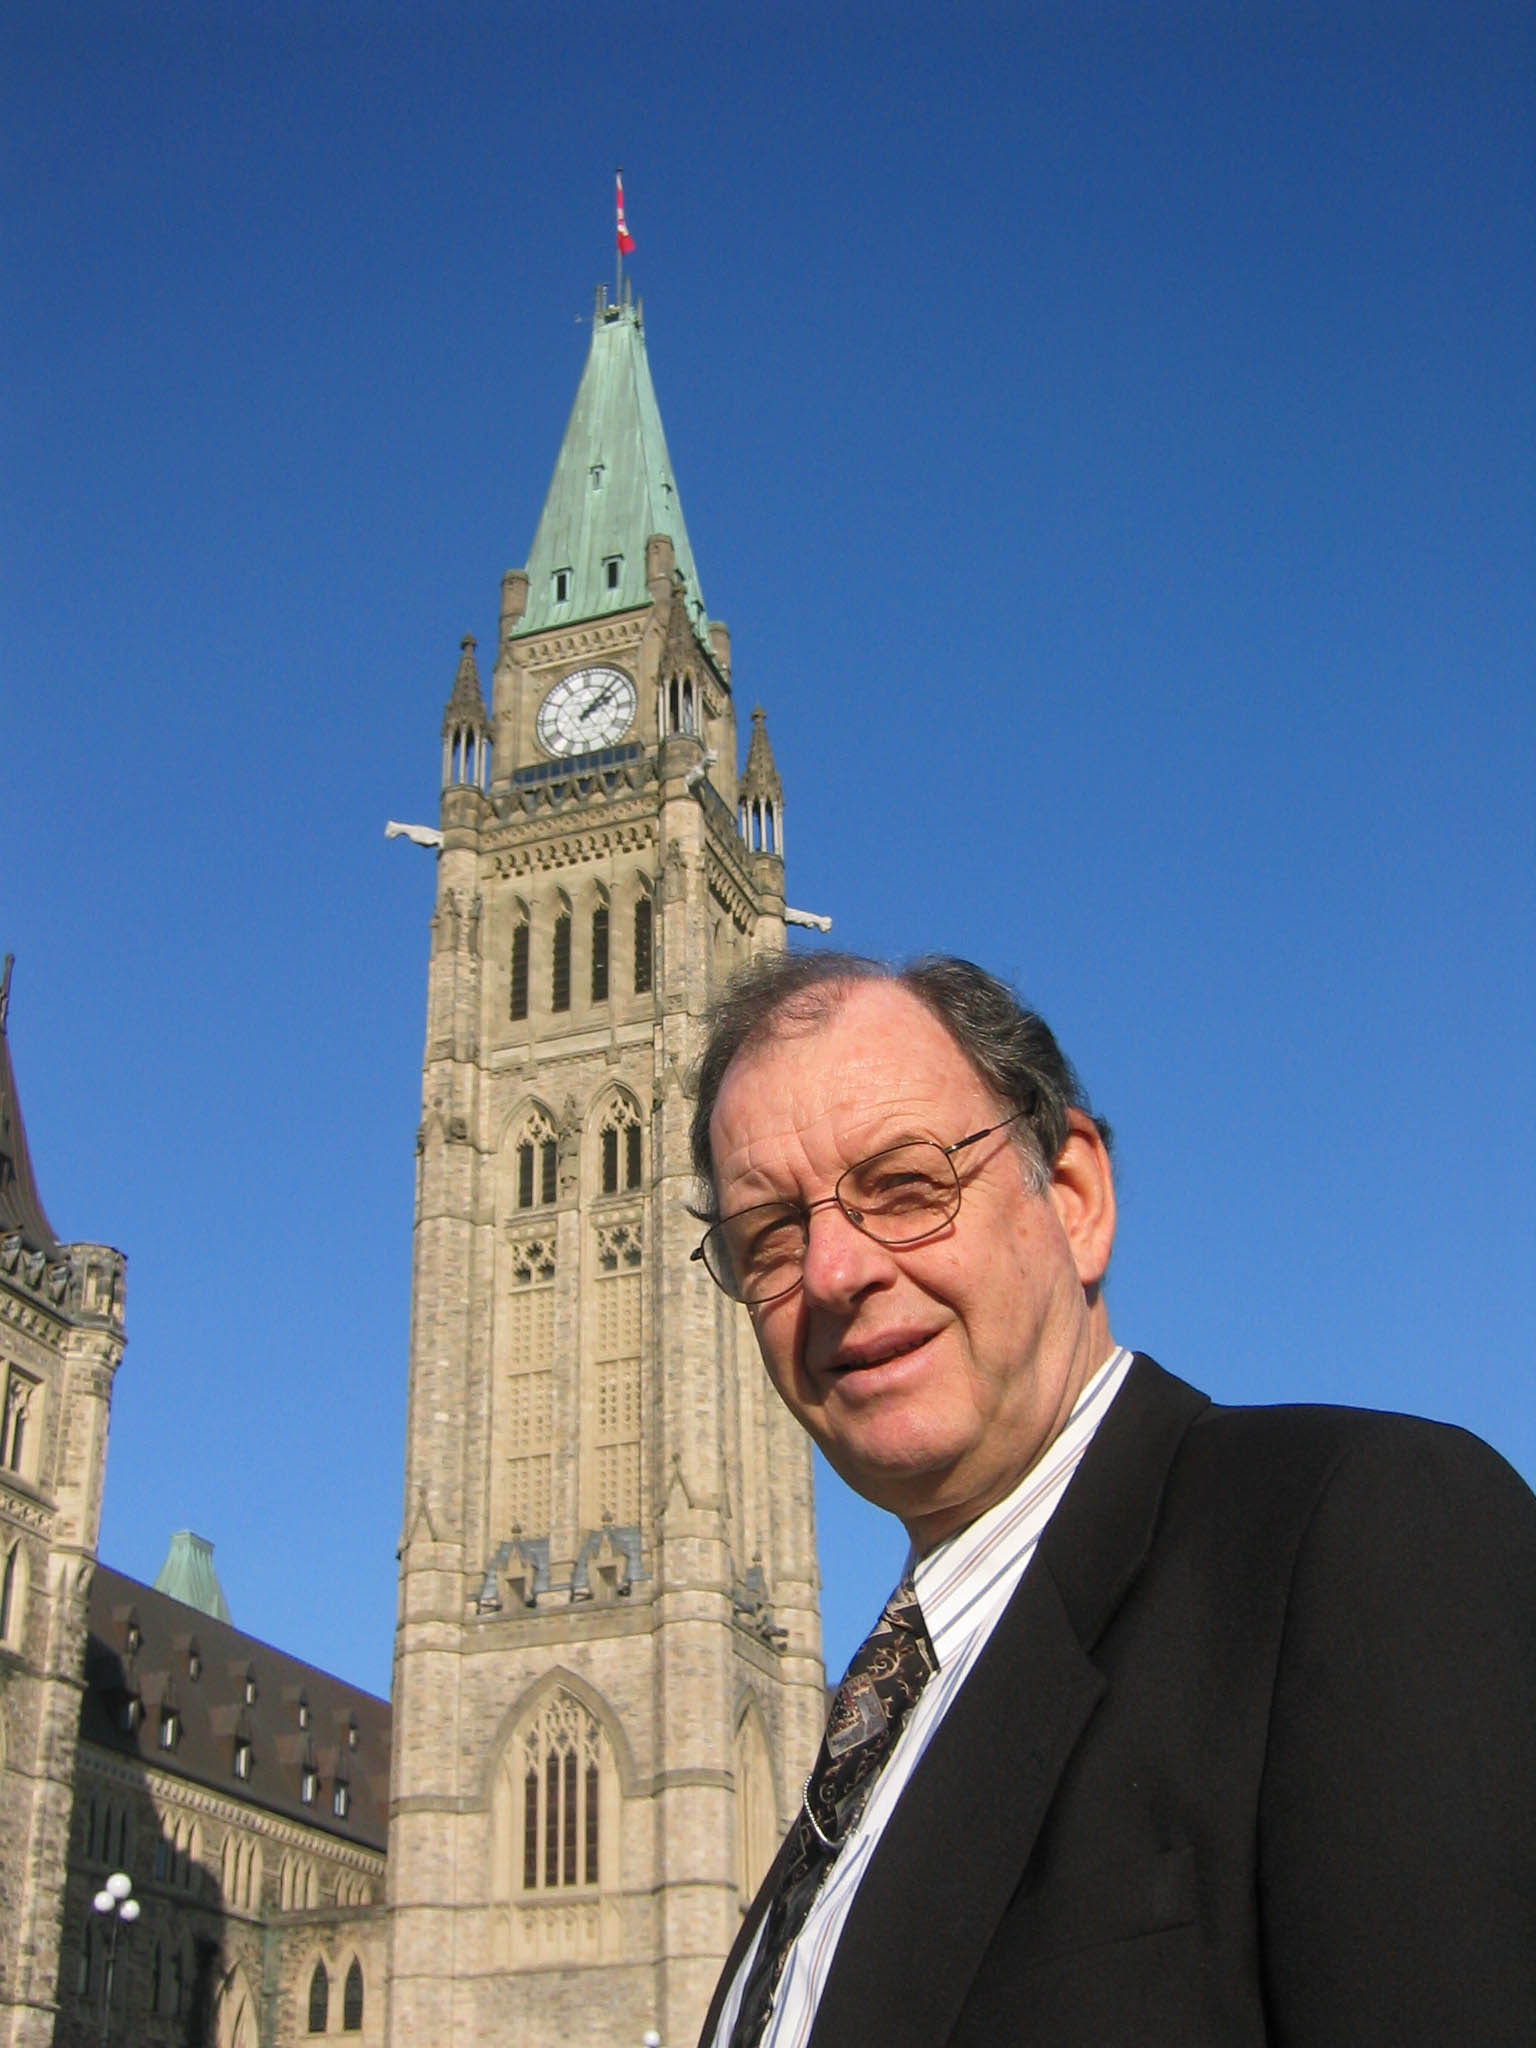 Lloyd Mackey in front of the Peace Tower on Parliament Hill in Ottawa